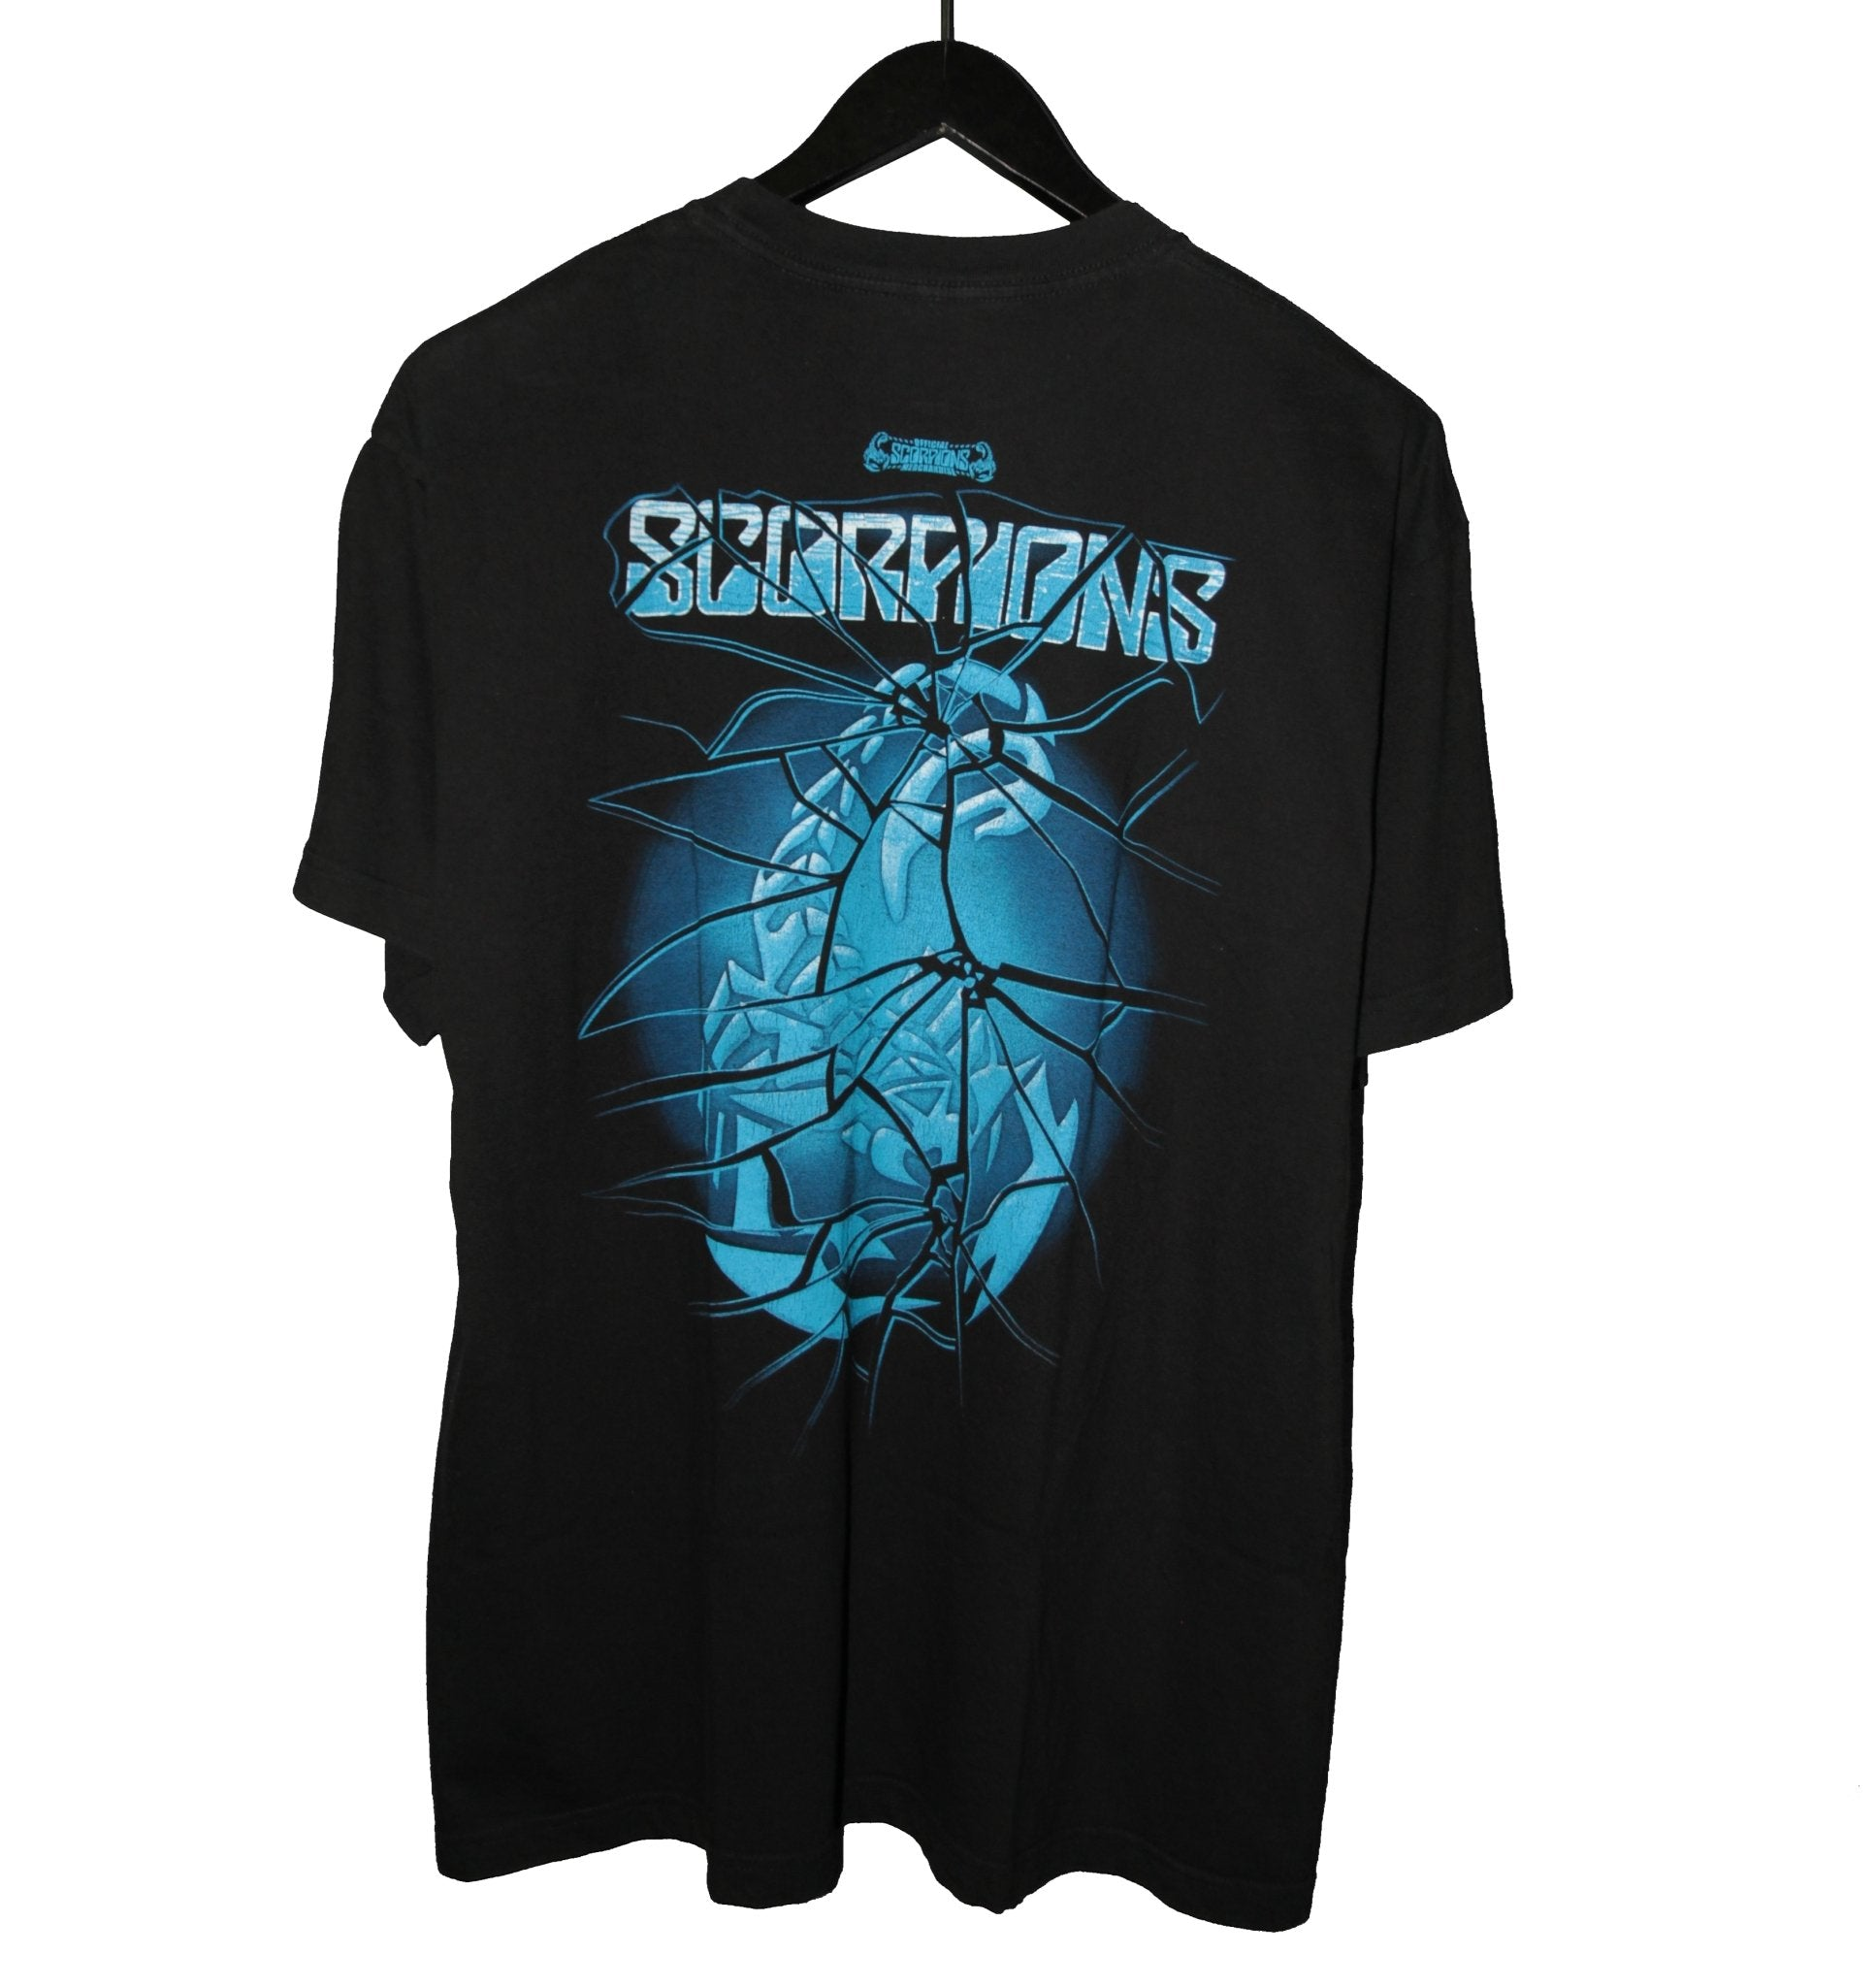 Scorpions 00's Blackout Album Shirt - Faded AU